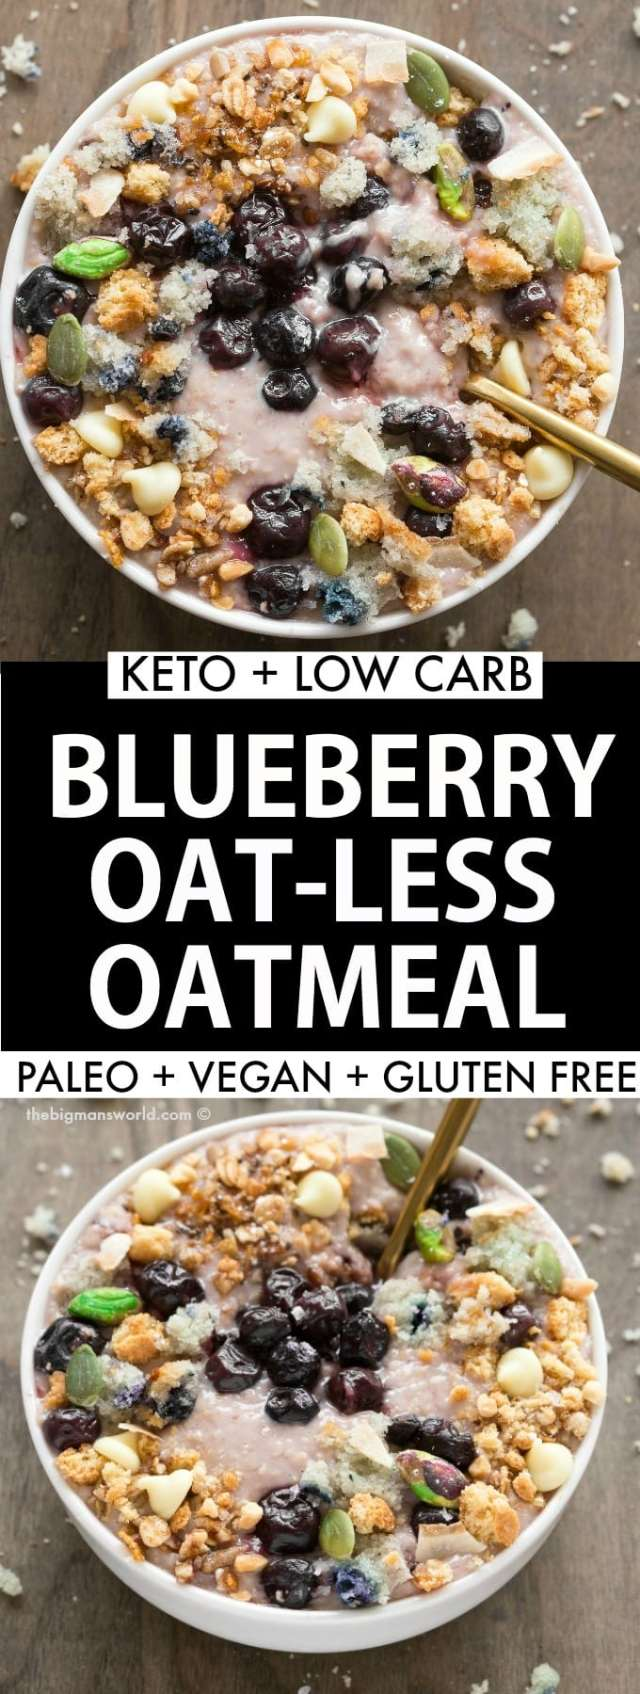 Keto Low Carb Overnight Blueberry Oatmeal recipe